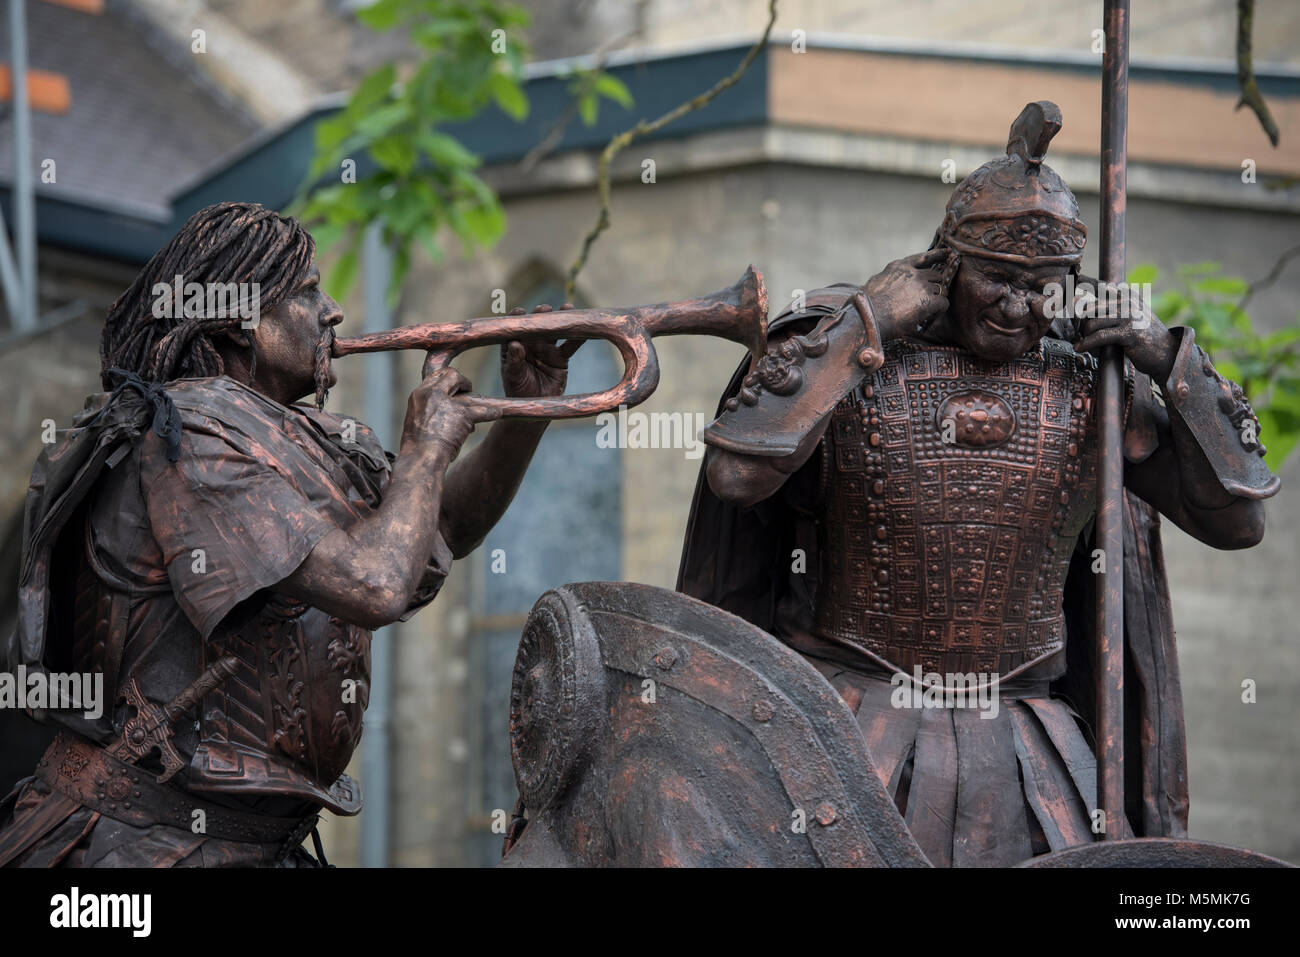 The Netherlands. Valkenburg. 11-06-2017. Dutch Championship Living Statues. - Stock Image